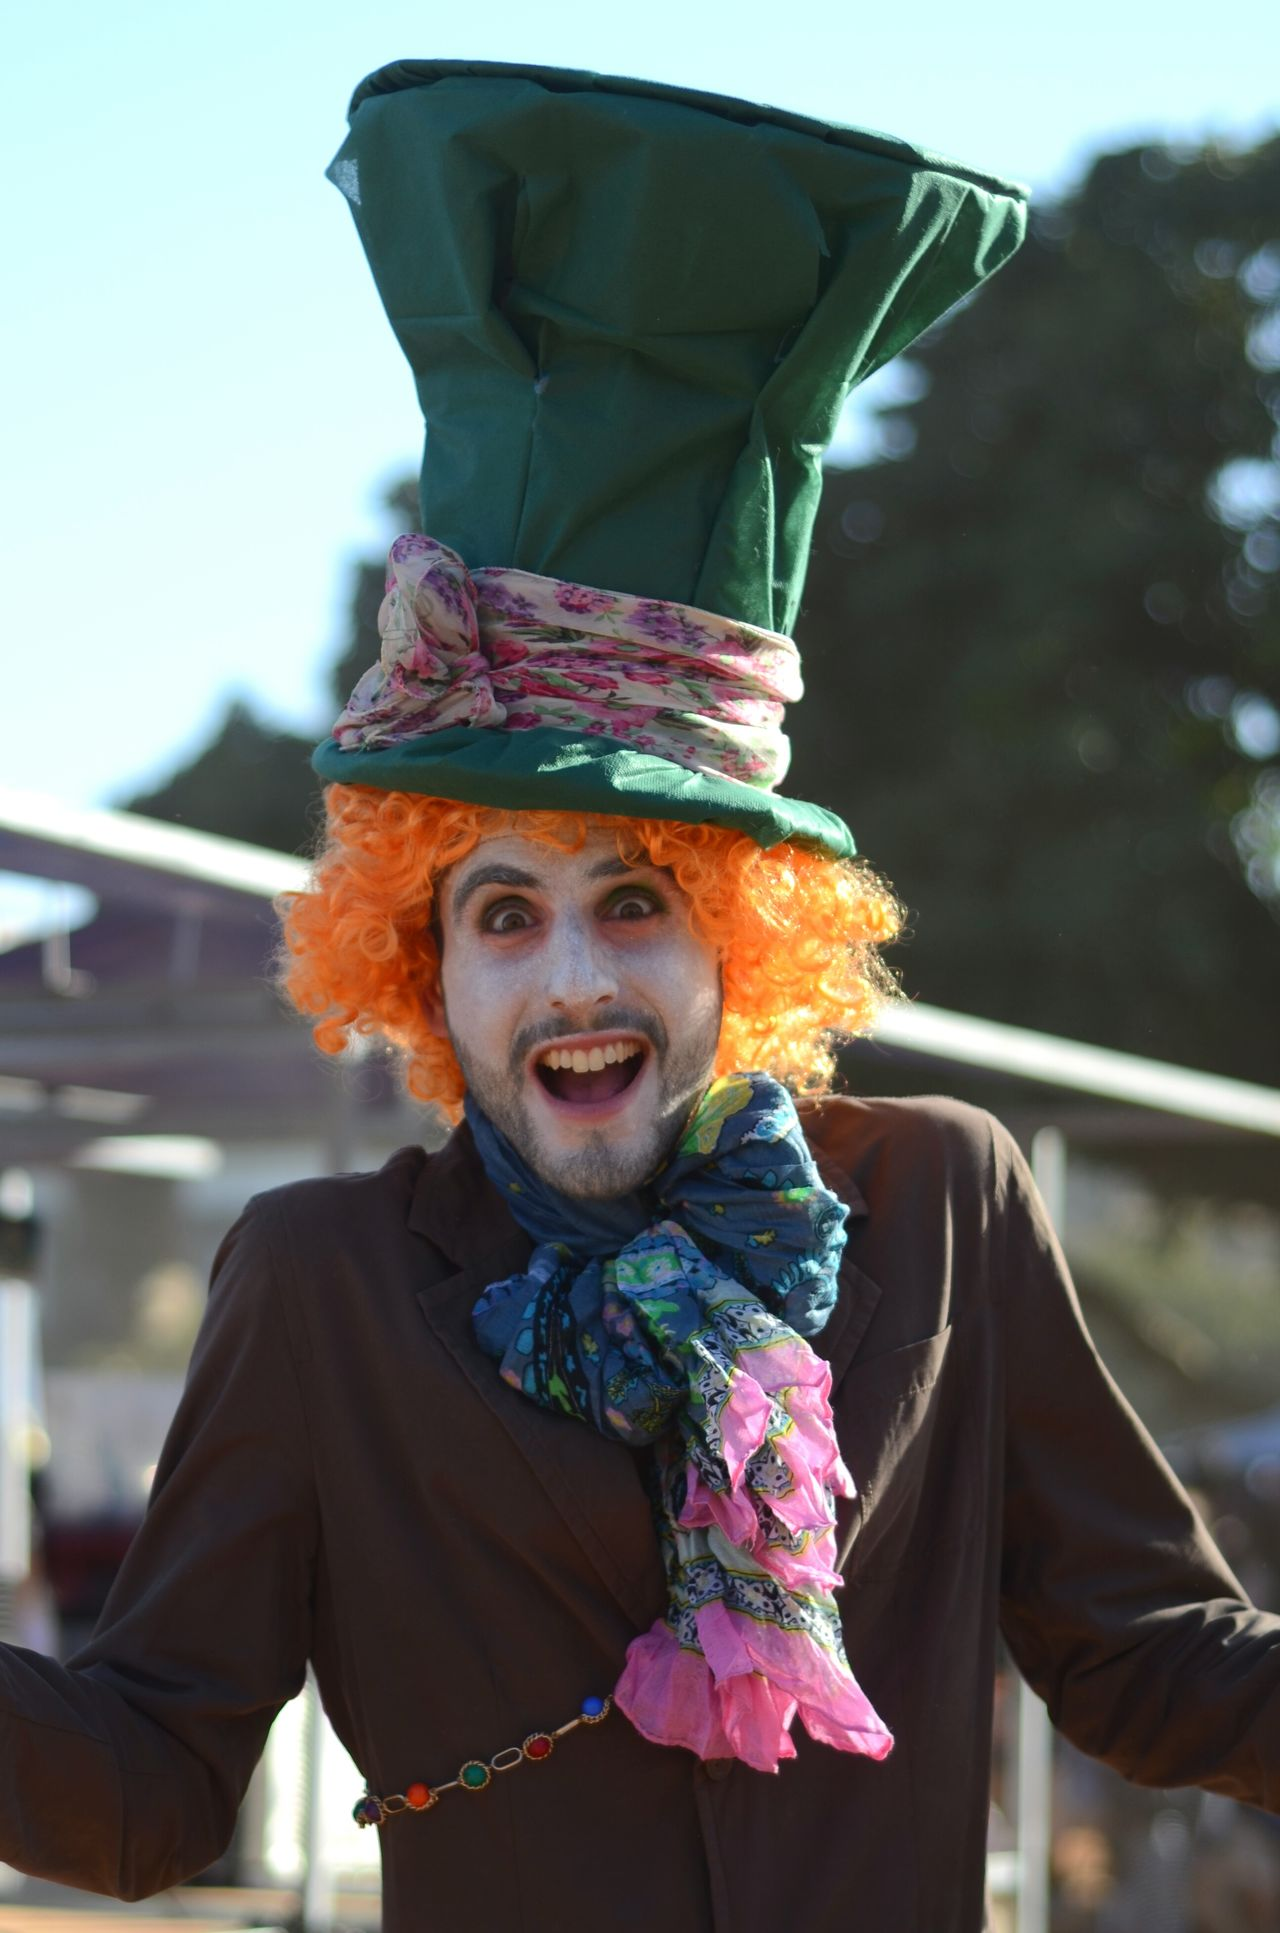 Colors Of Carnival Hat Big Hat Big Smile Costume EyeEm Best Shots Eye4photography  EyeEm Street Photography Streetphotography Check This Out Peoplephotography Man Surprised Showcase: February Holiday Jews Israel Custom Purim Let Your Hair Down